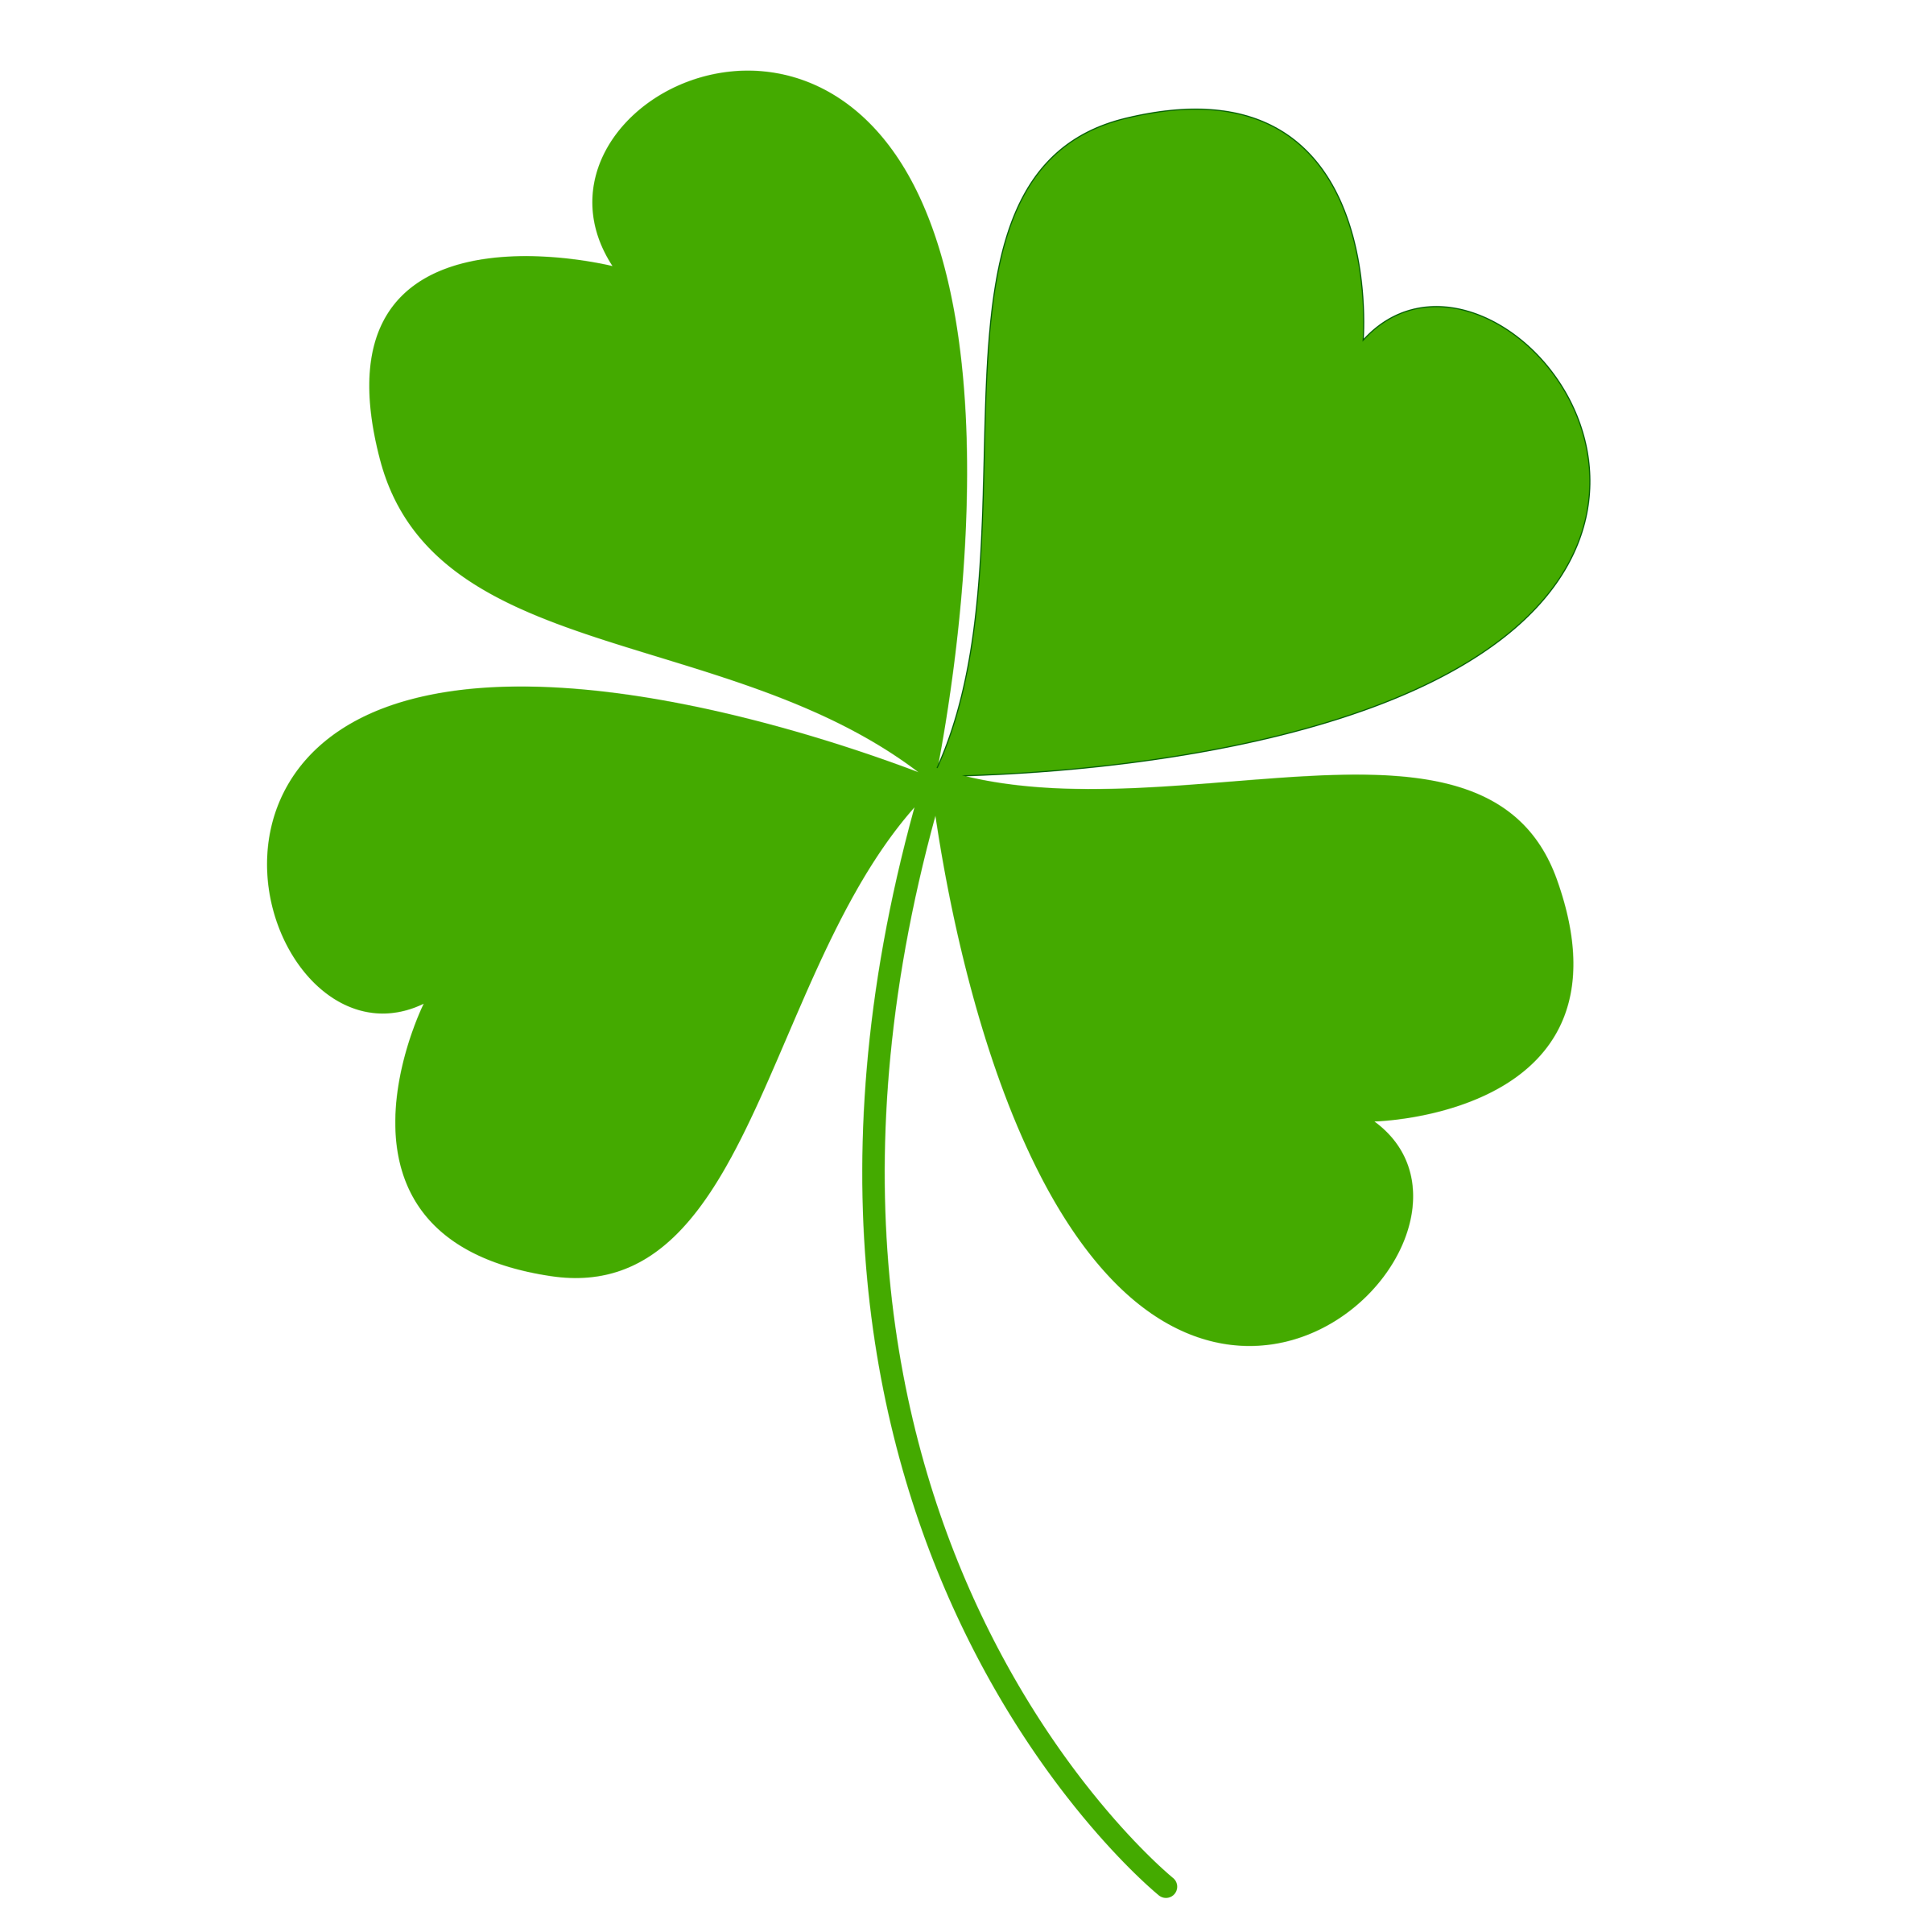 Crown leaf clover clipart picture black and white download 28+ Collection of Four Leaf Clover Clipart | High quality, free ... picture black and white download